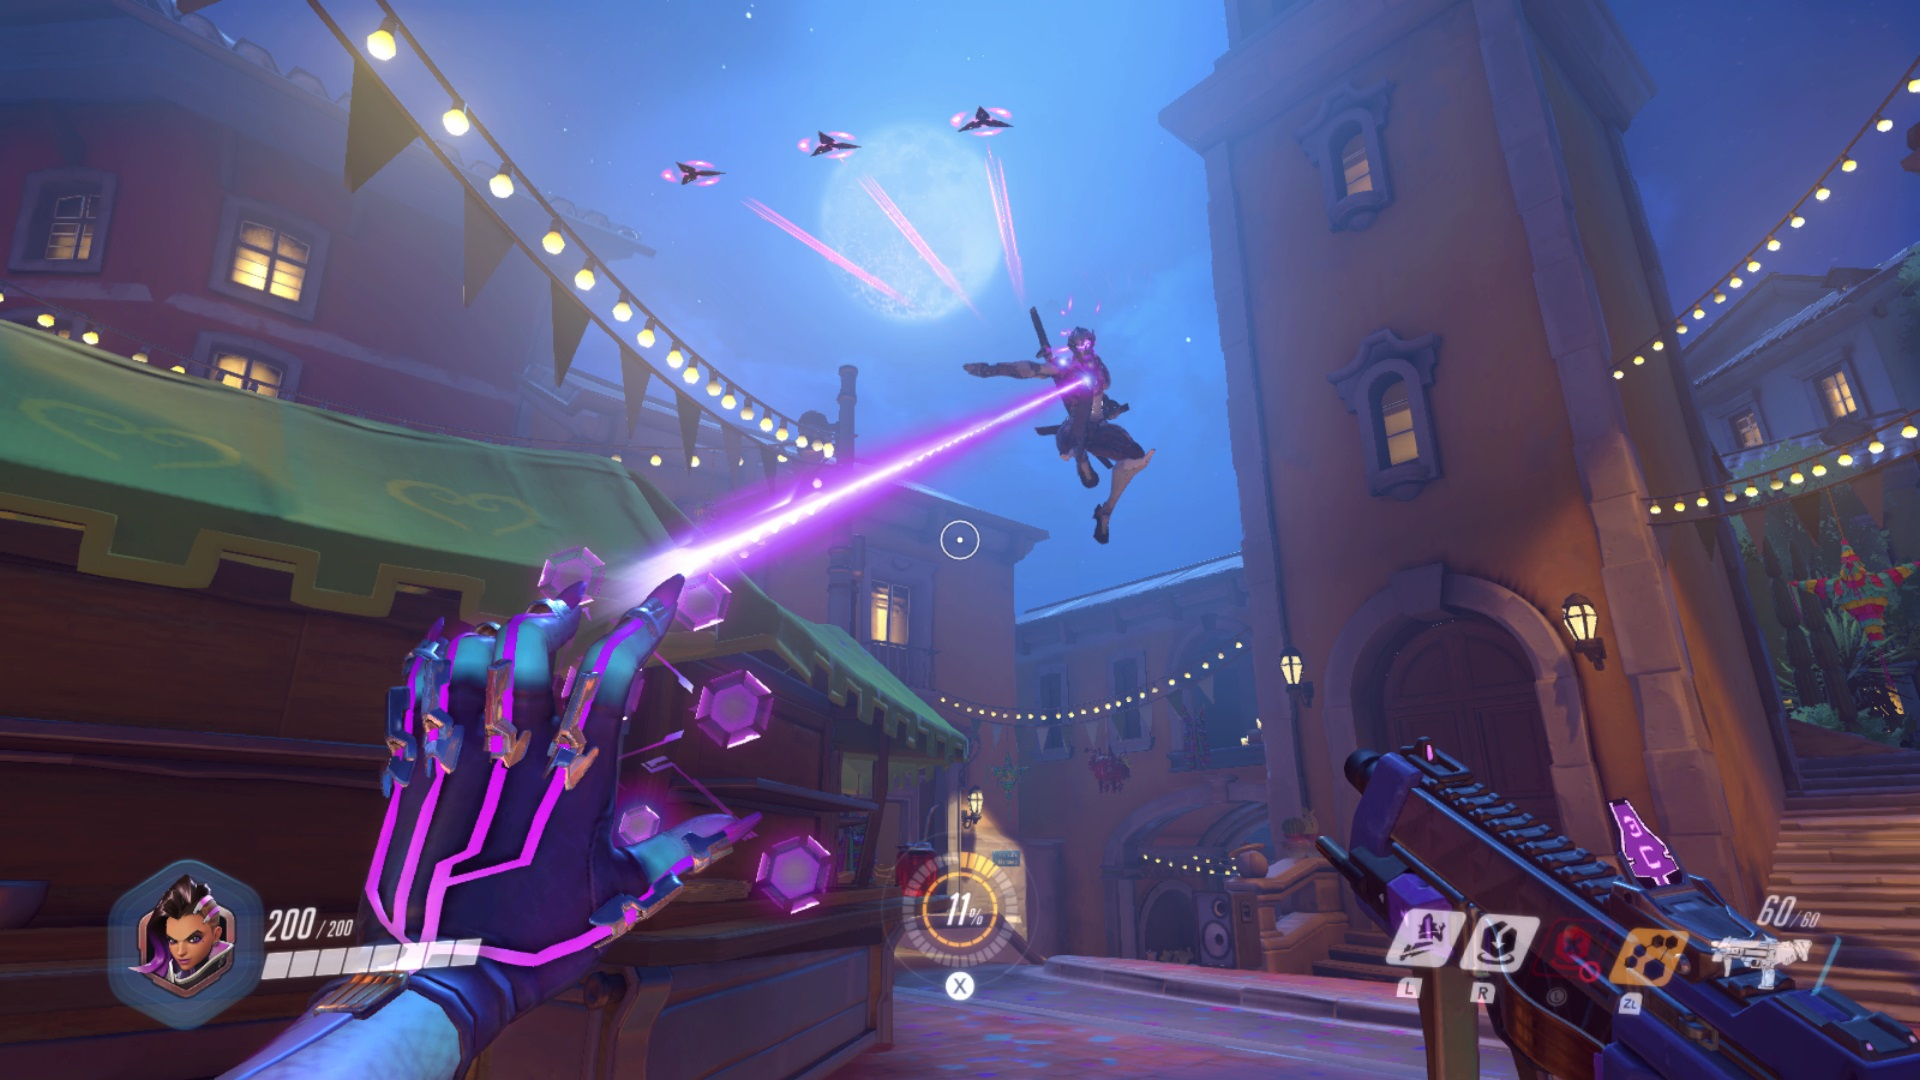 Overwatch: Legendary Edition arriva su Nintendo Switch il 15 ottobre